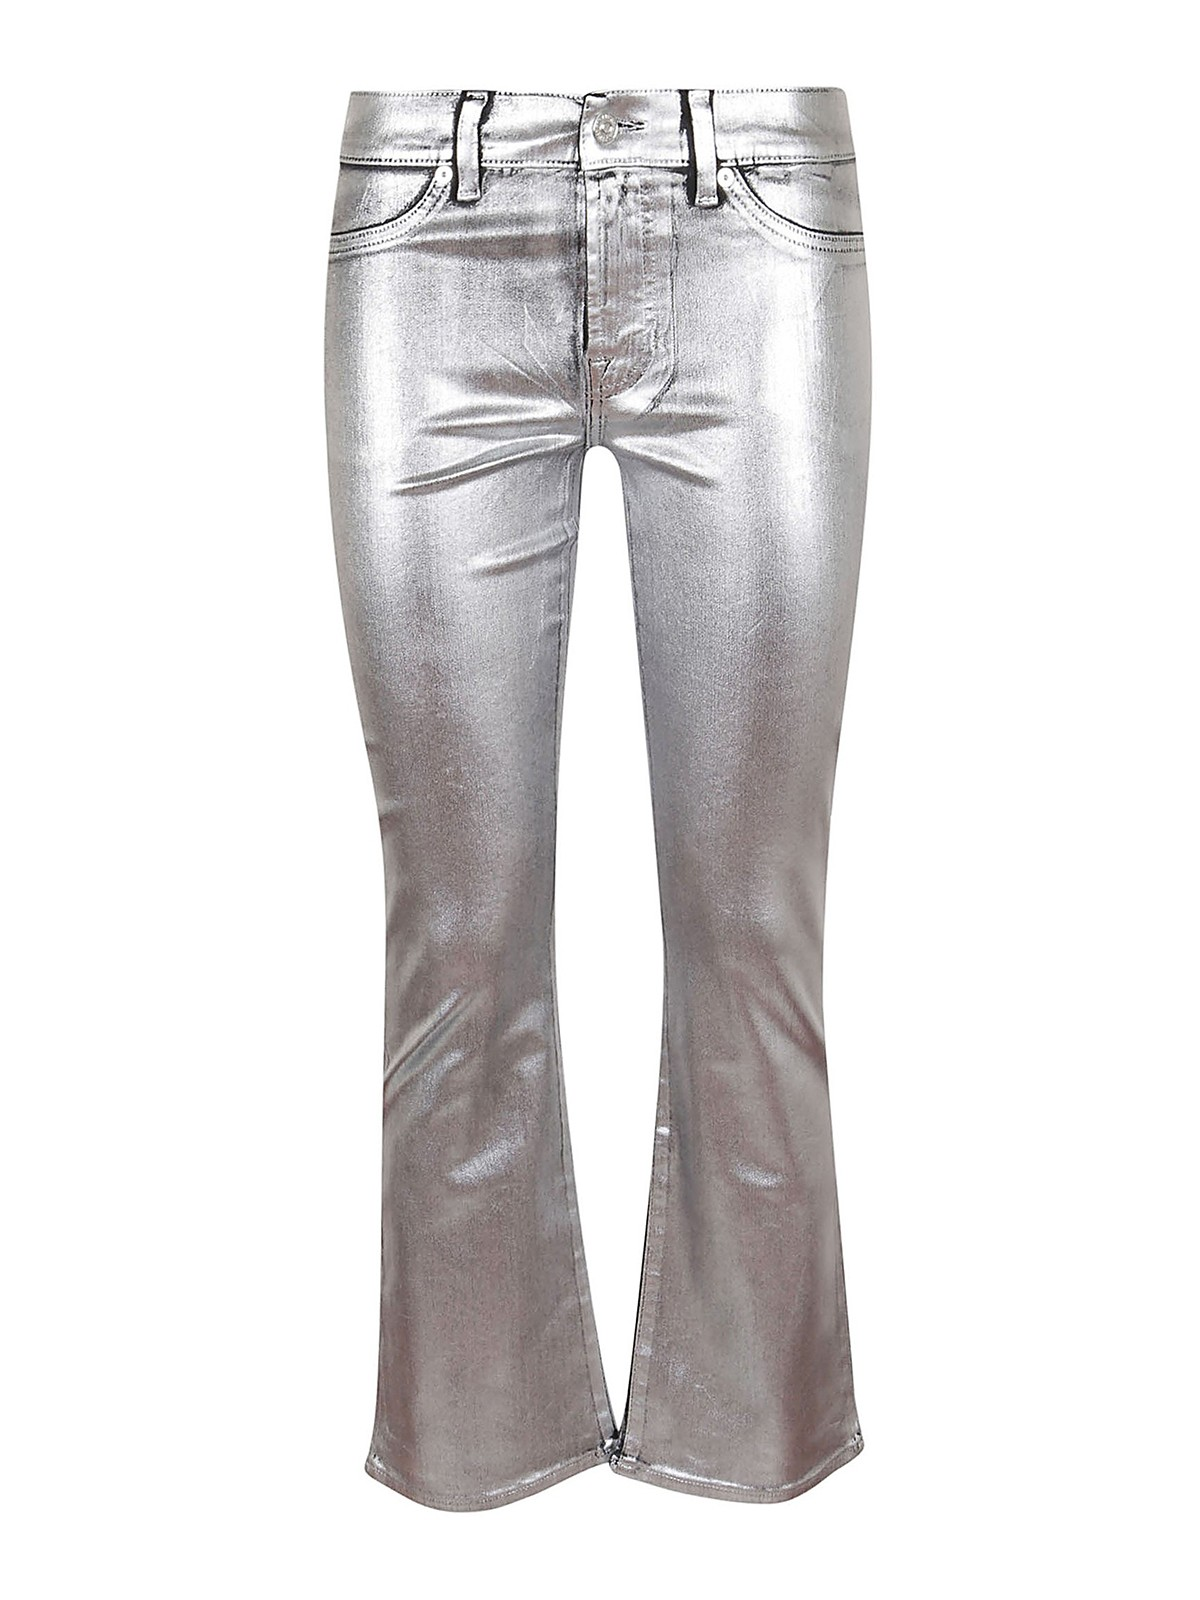 7 For All Mankind COATED SLIM ILLUSION SILVER JEANS